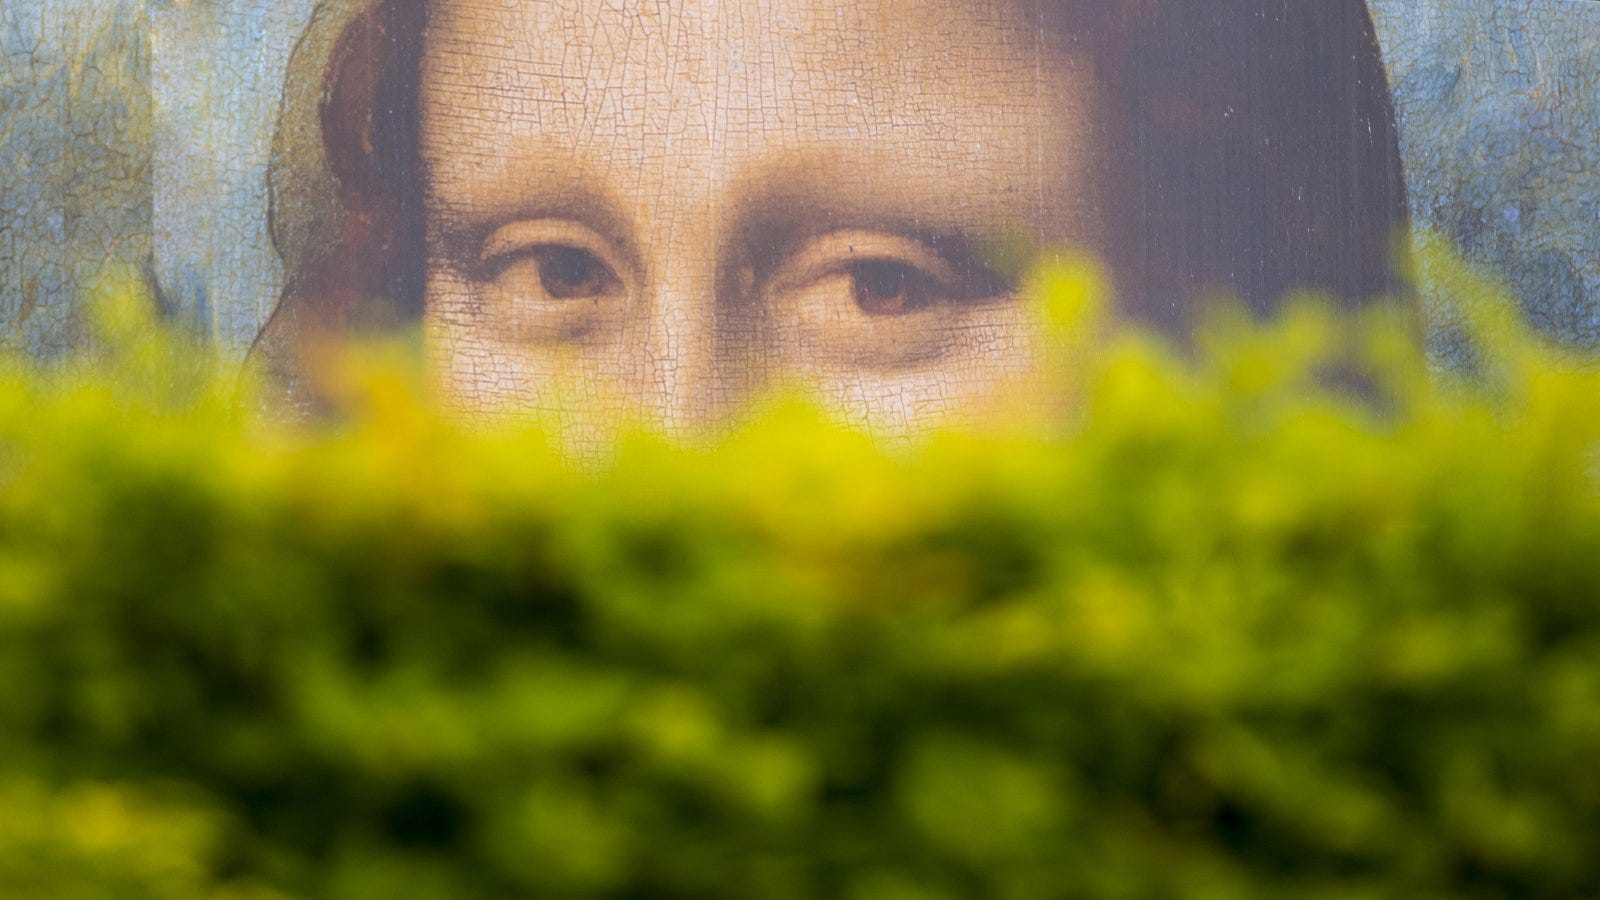 Why Is the Mona Lisa So Famous?